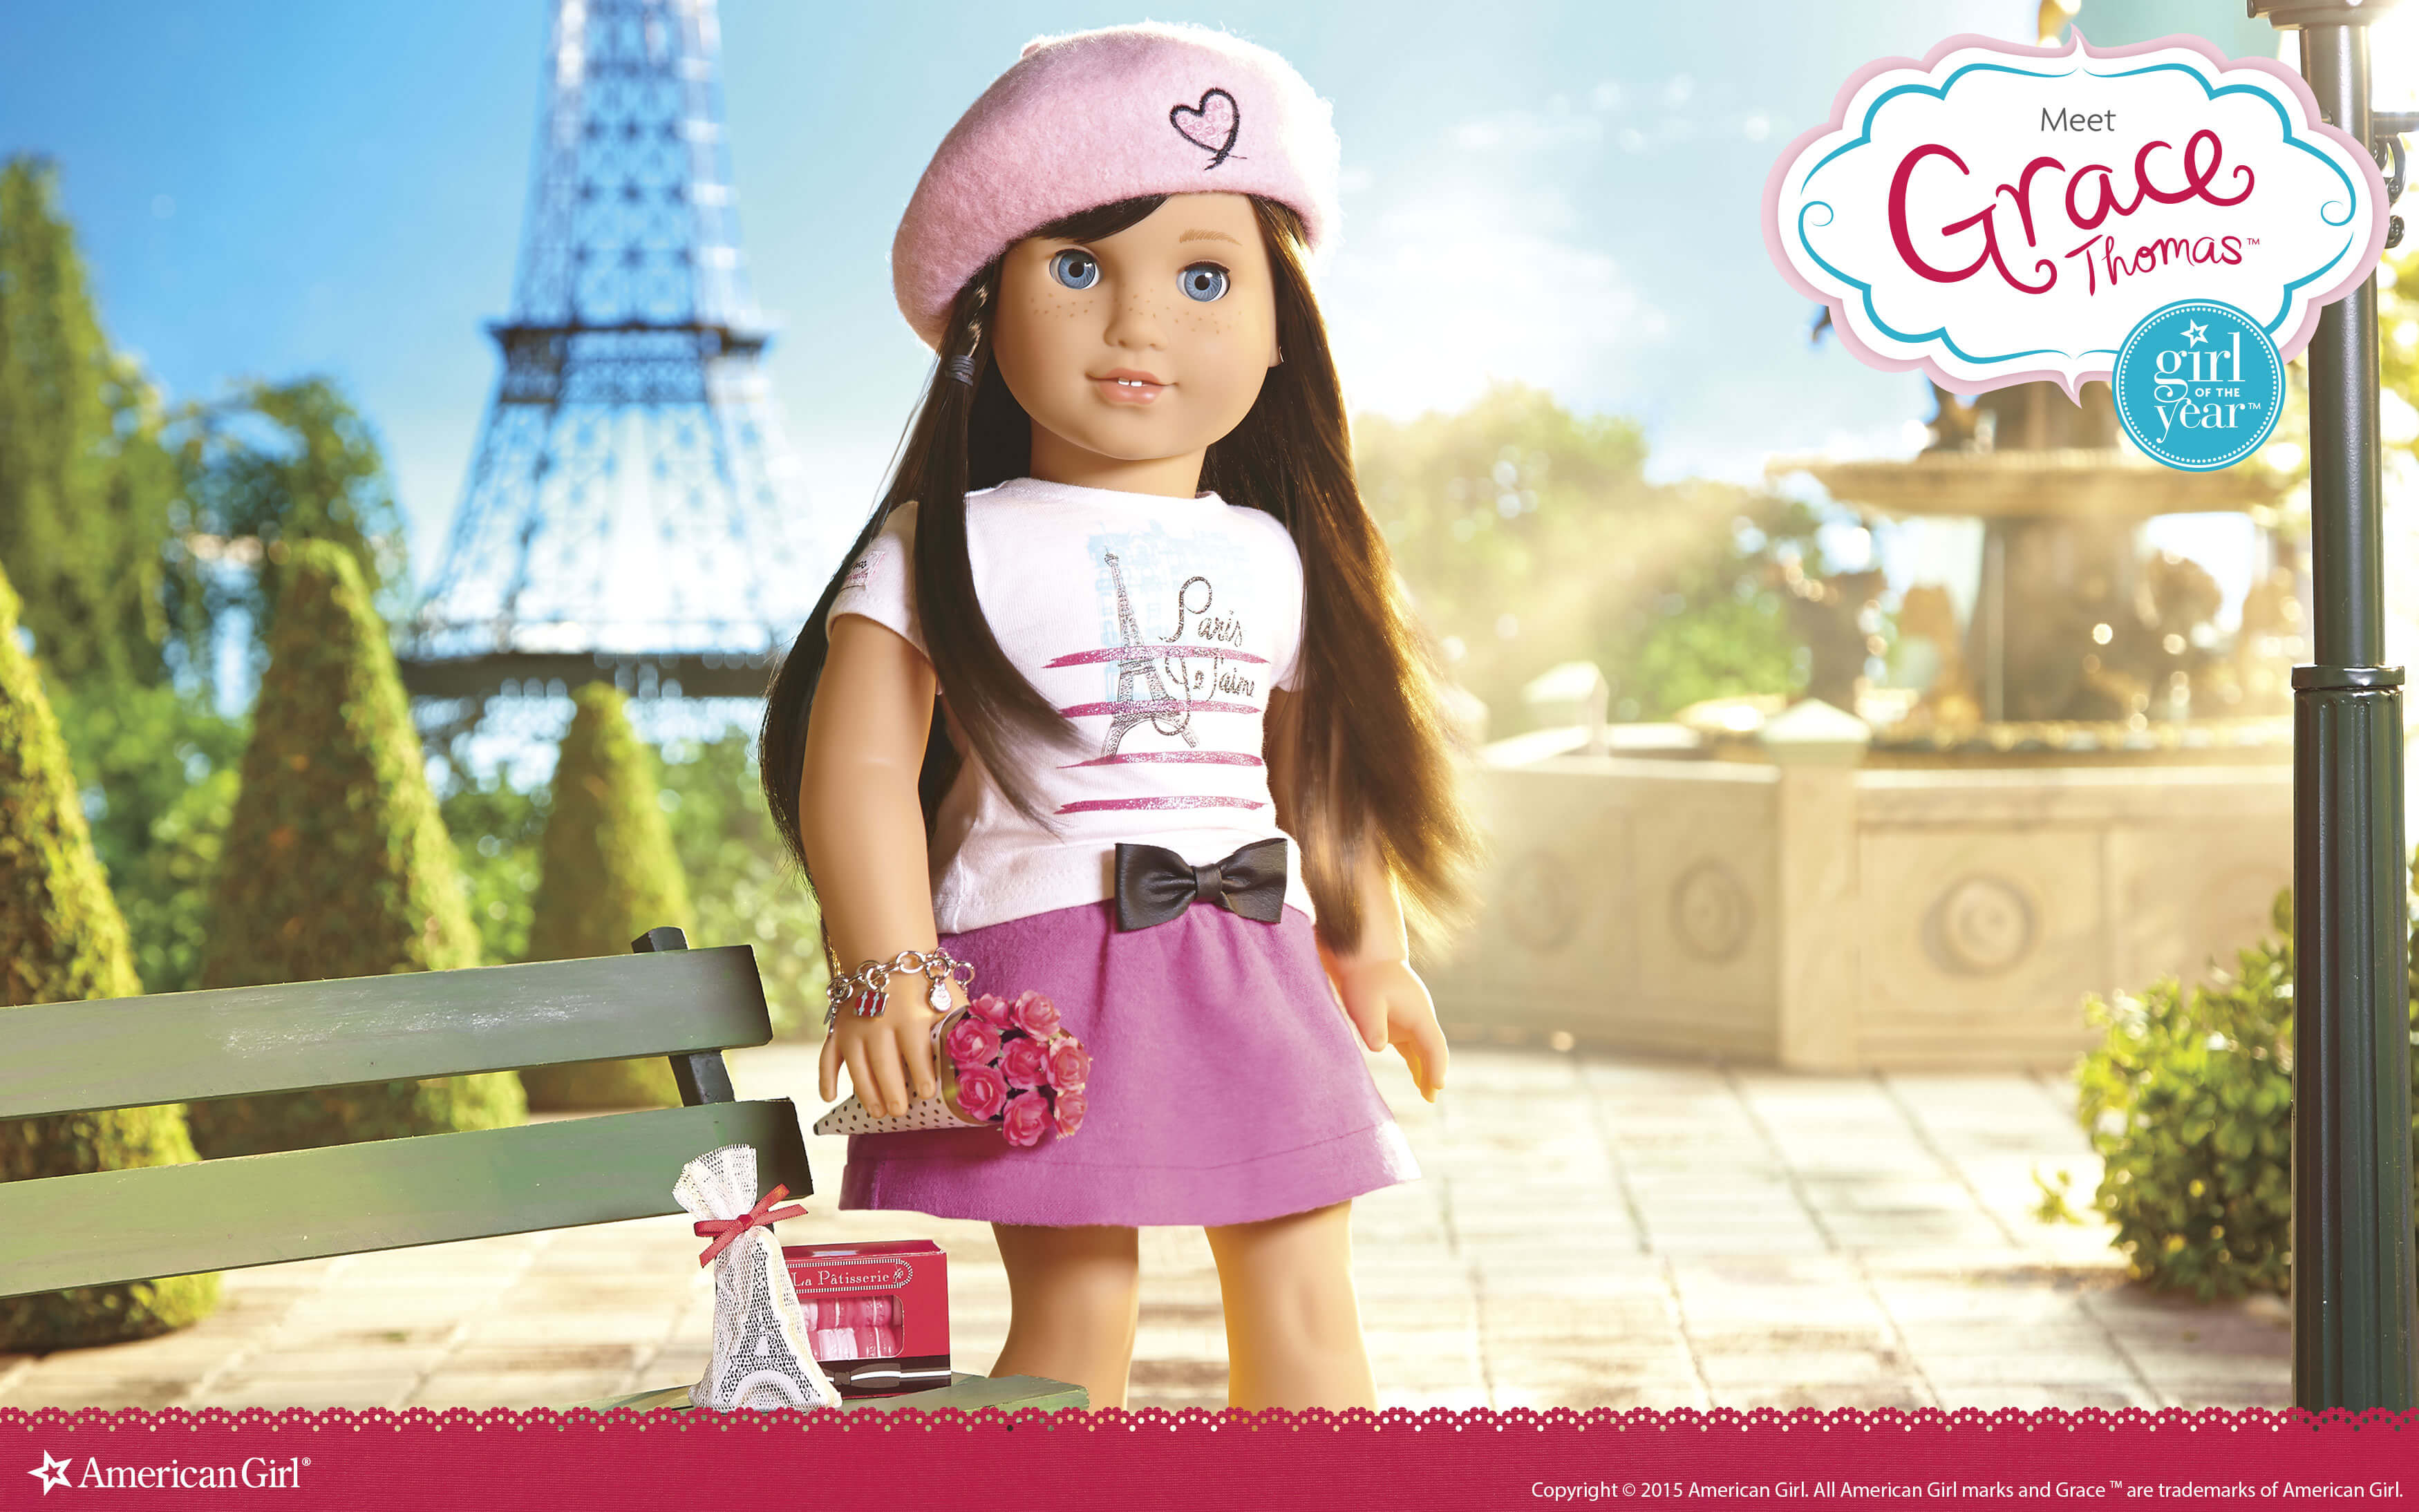 american girl wallpaper  American Girl of the Year - Grace | Play at American Girl